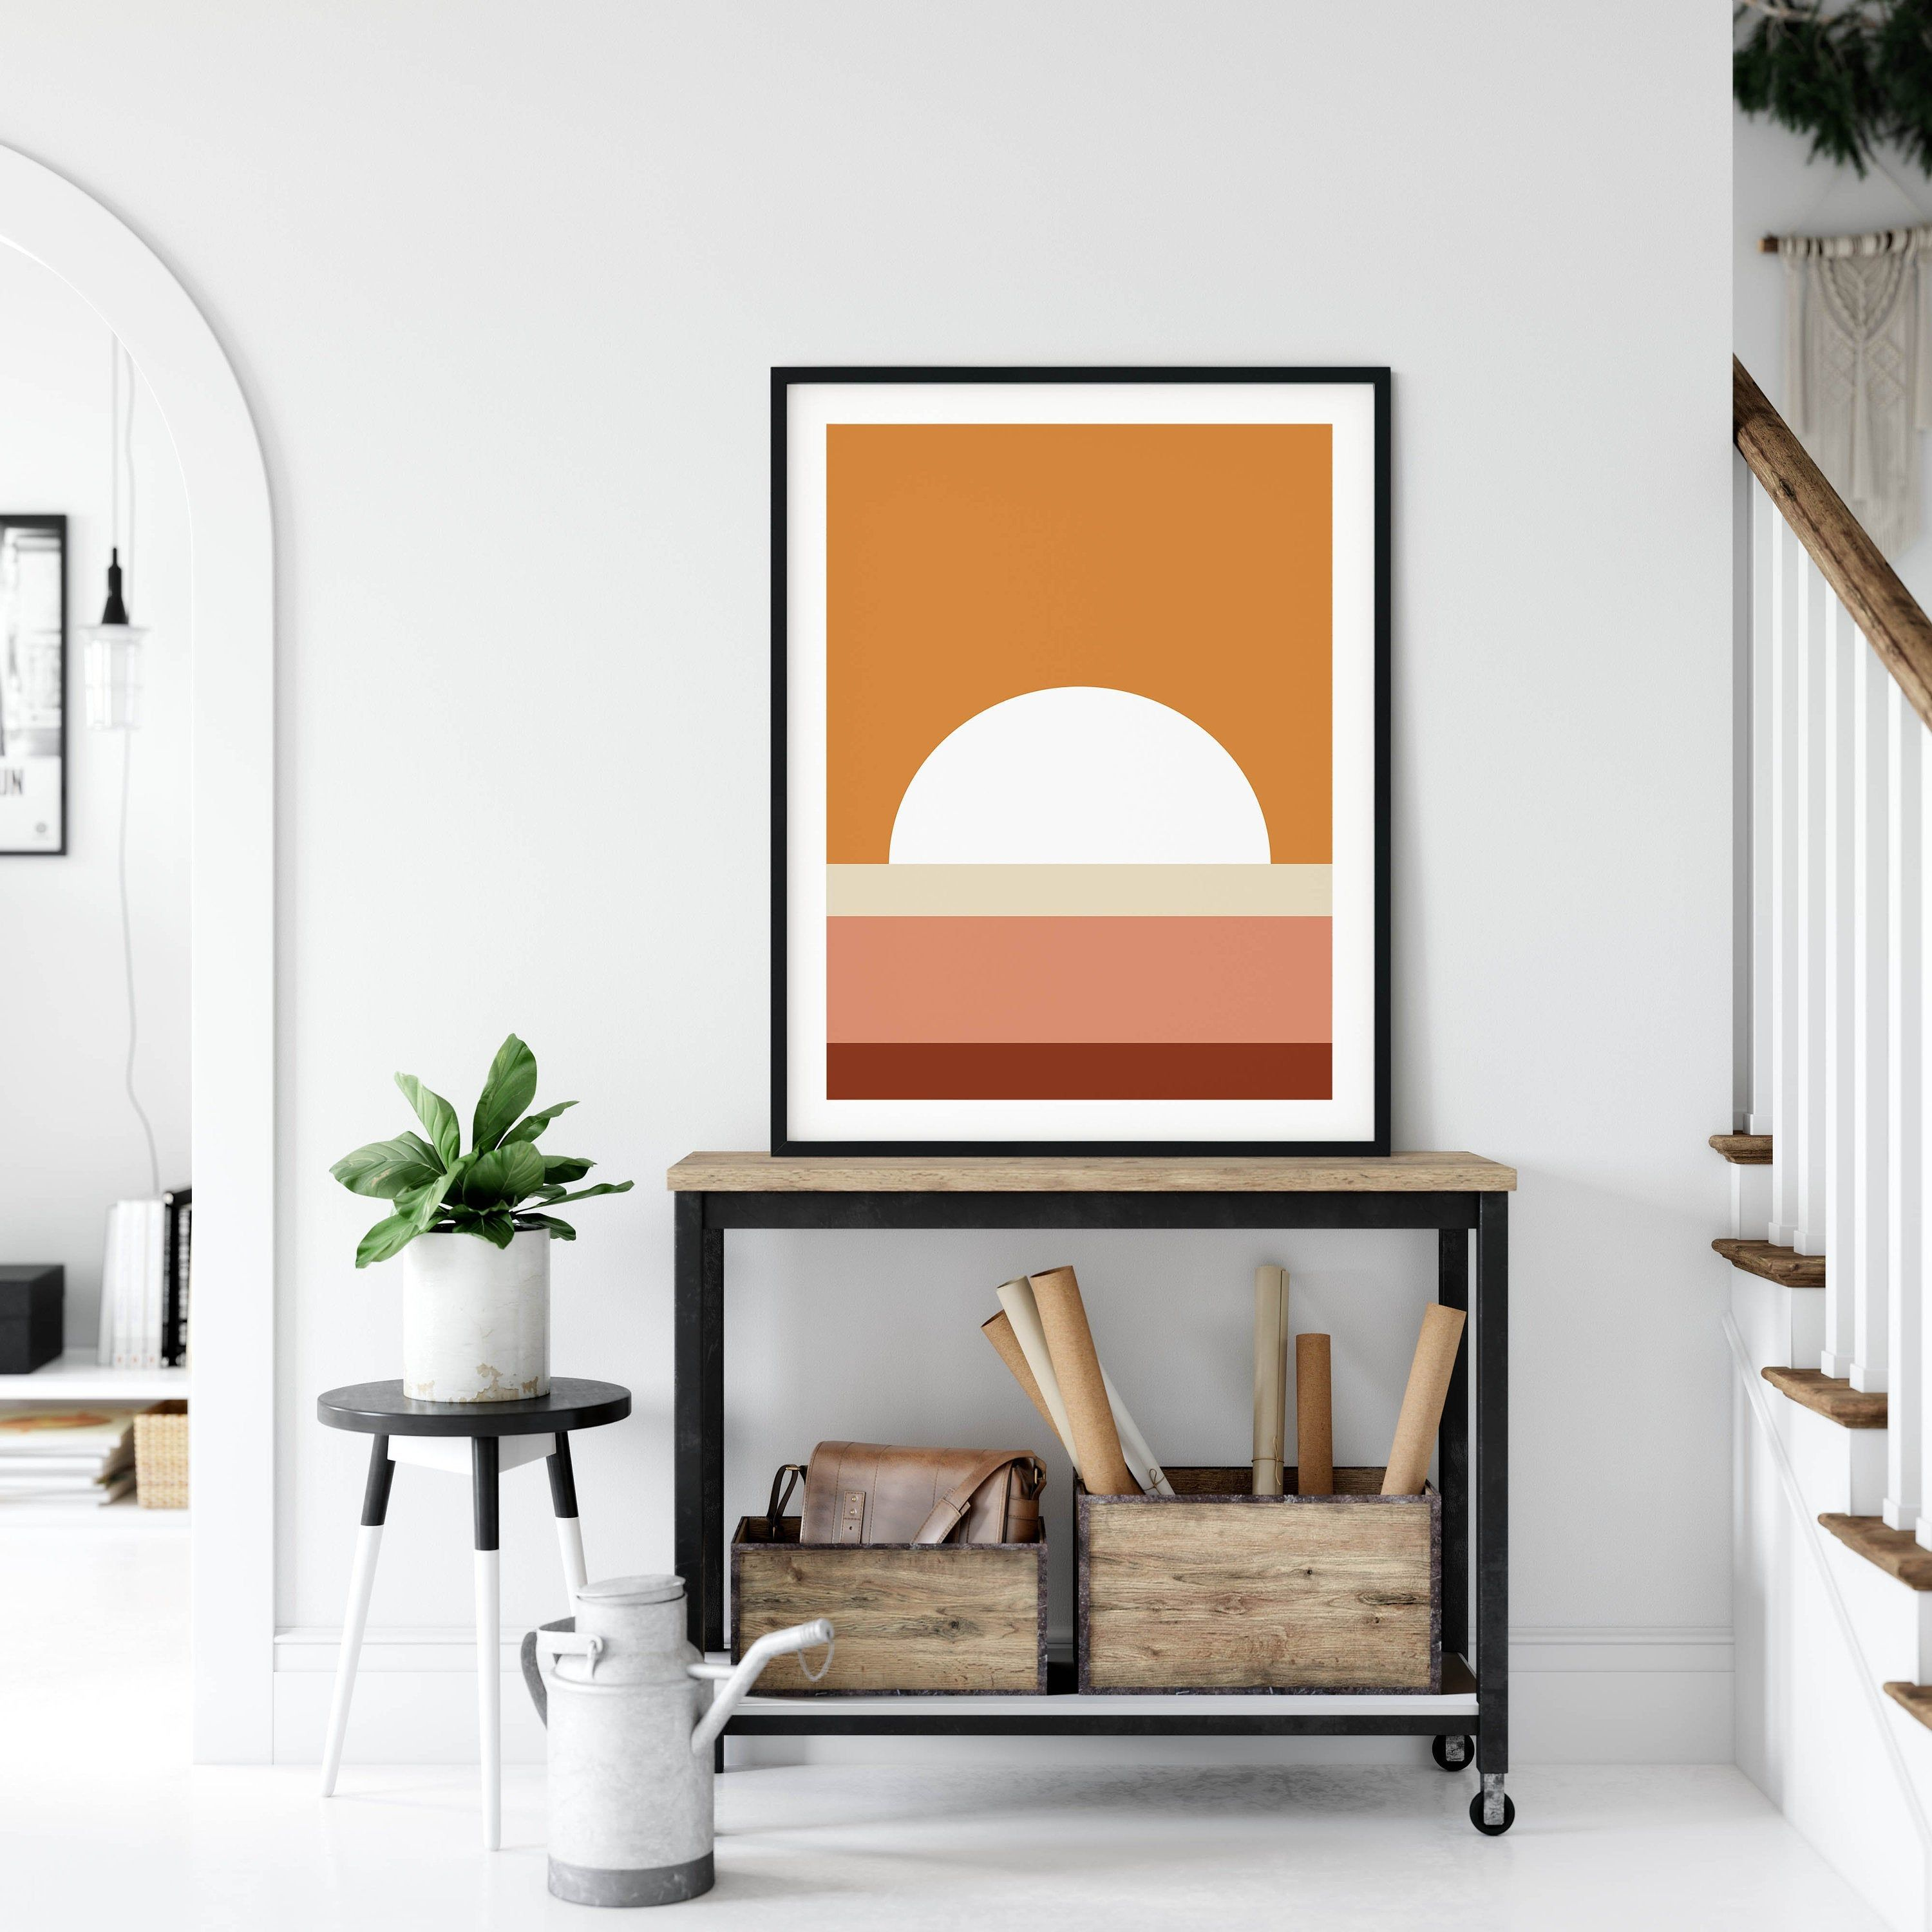 Etsy Reveals Top Home Decor and Decorating Trends for 10